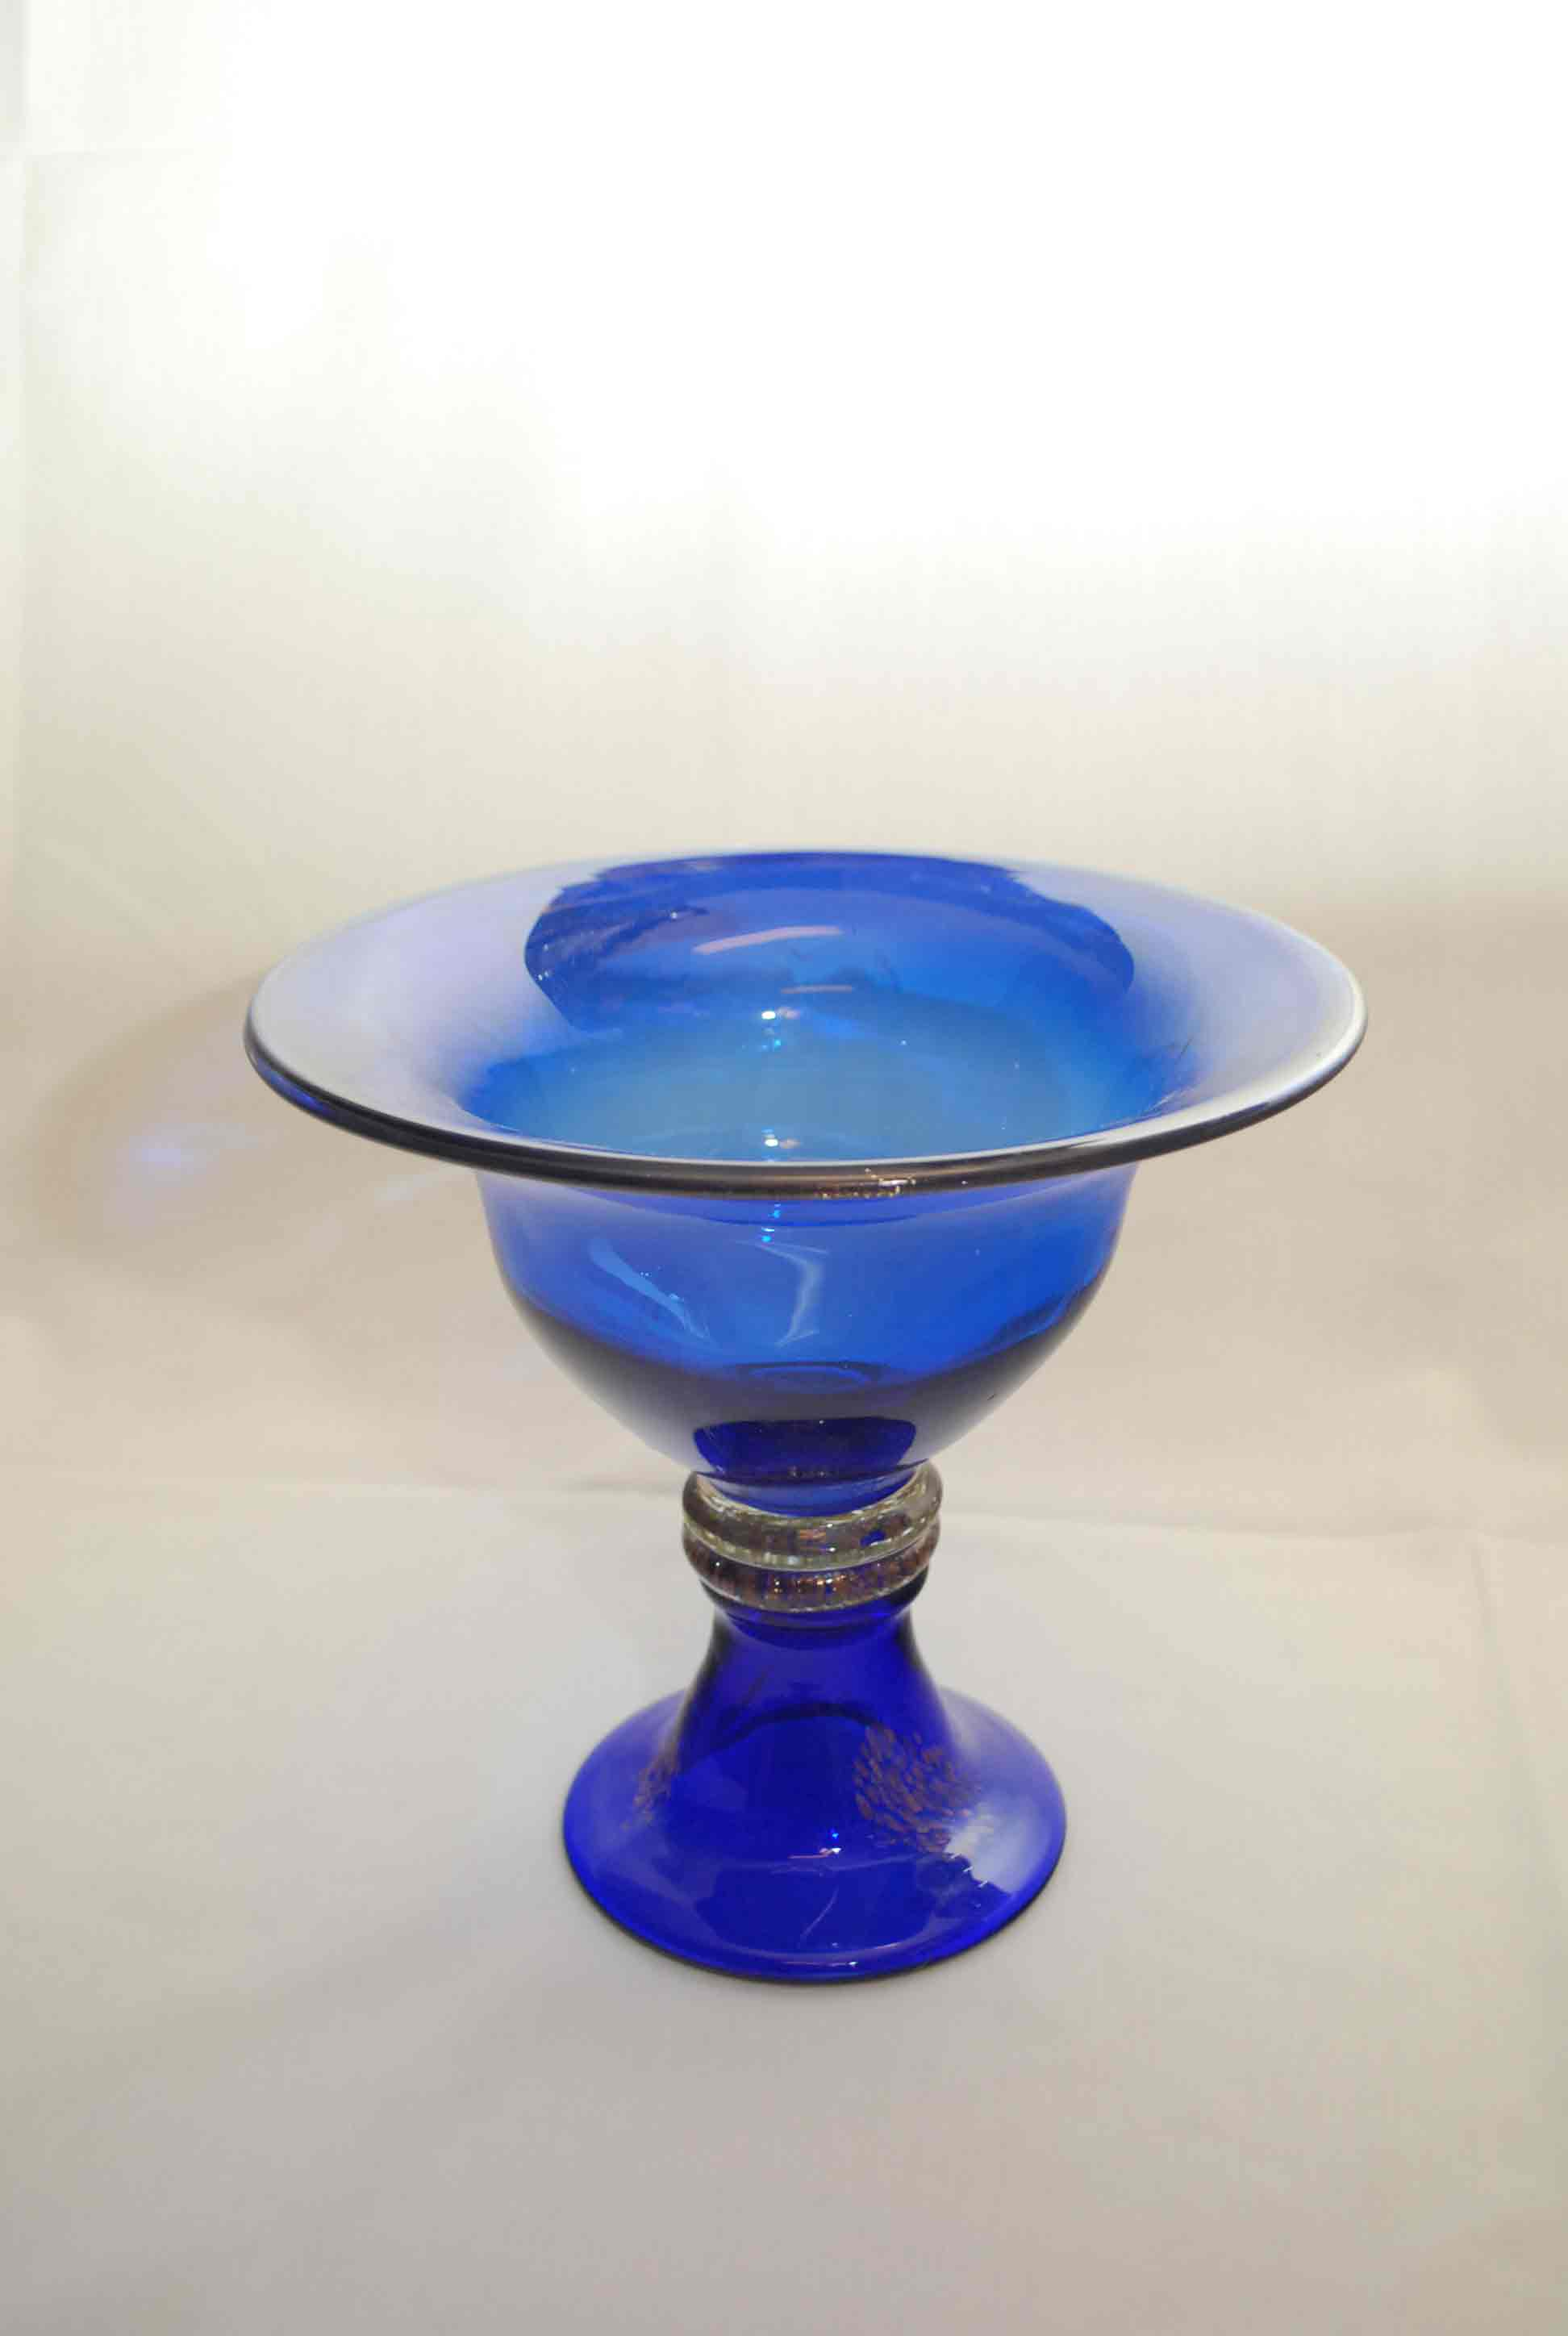 Destination events fluted blue glass bowl with gold trim